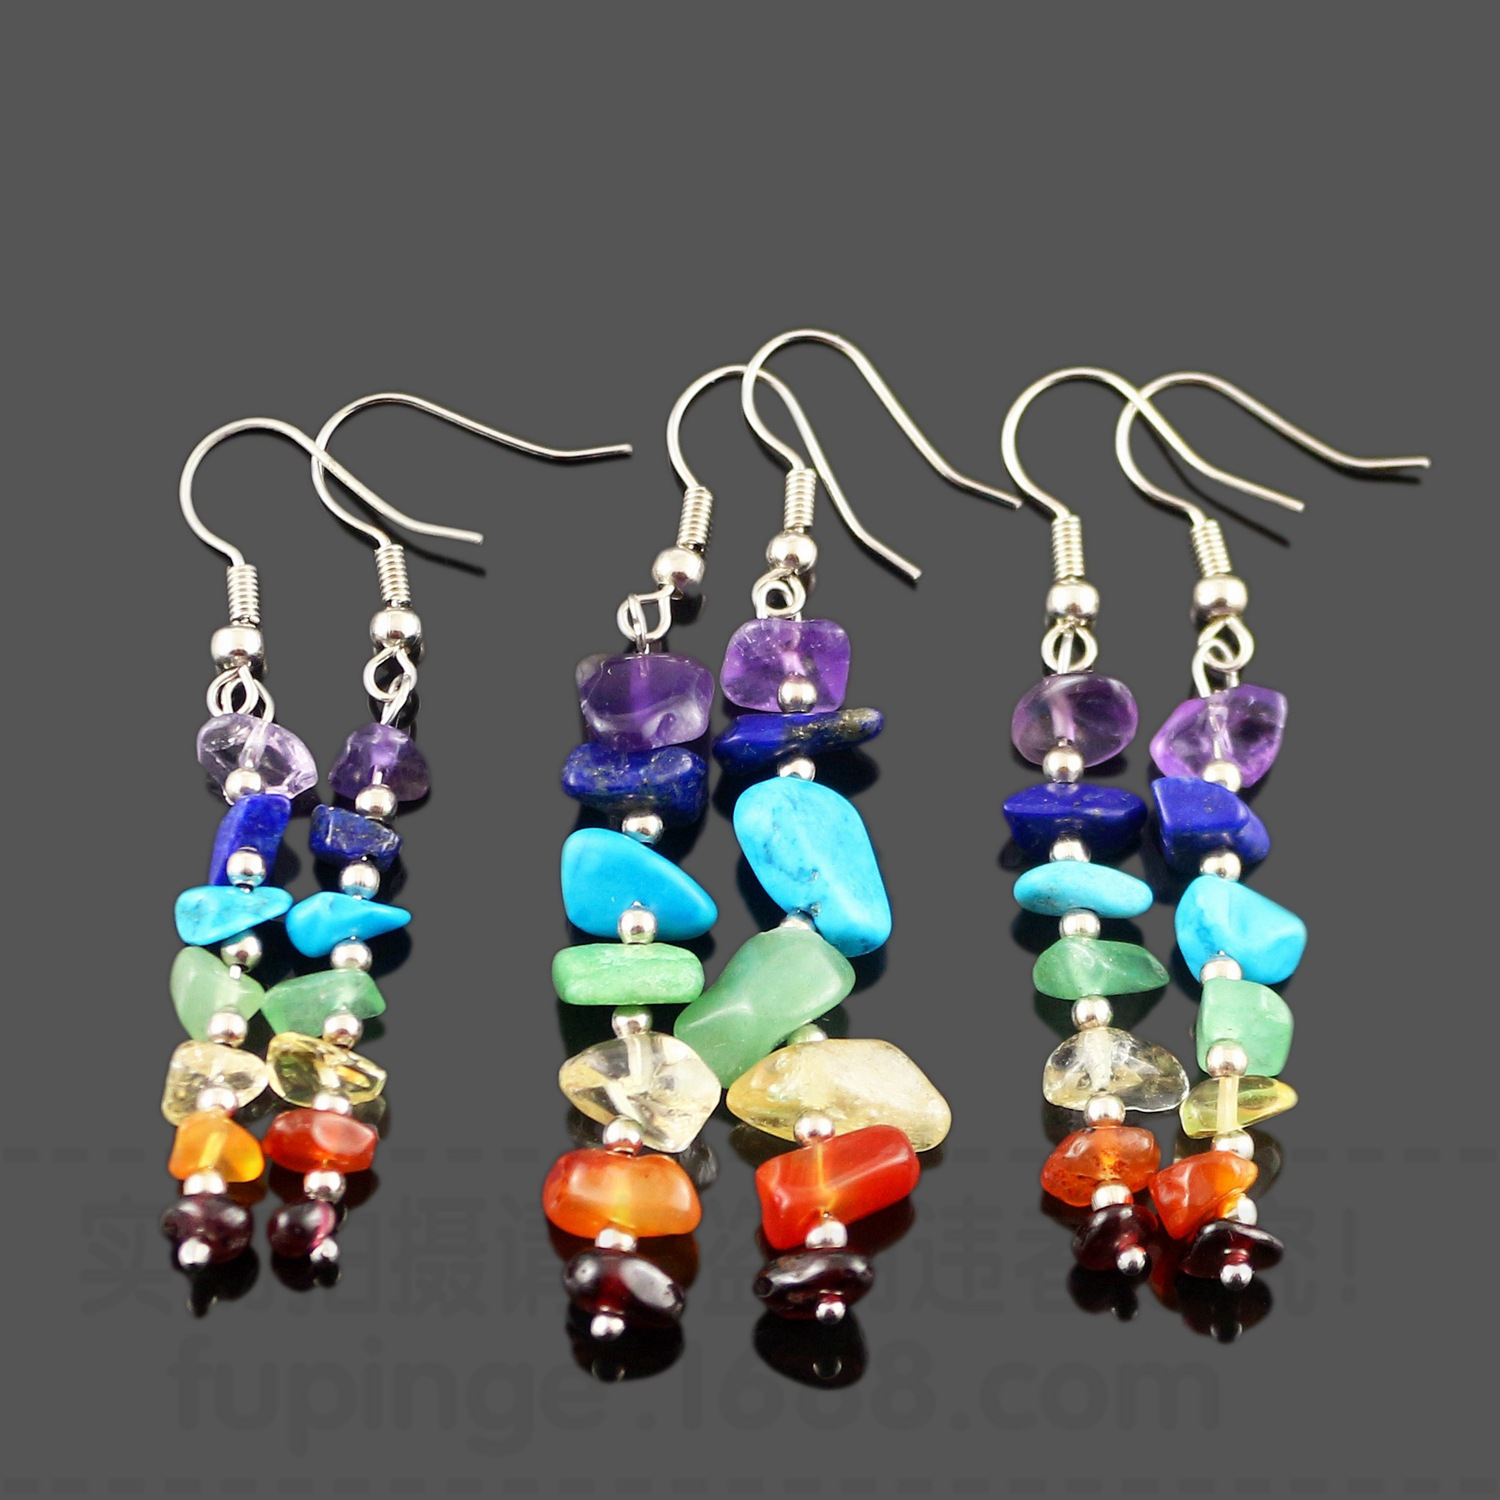 7 Chakra Long Fringed Statement Drop Earrings for Women Natural Stones Round Beads Reiki Healing Jewelry